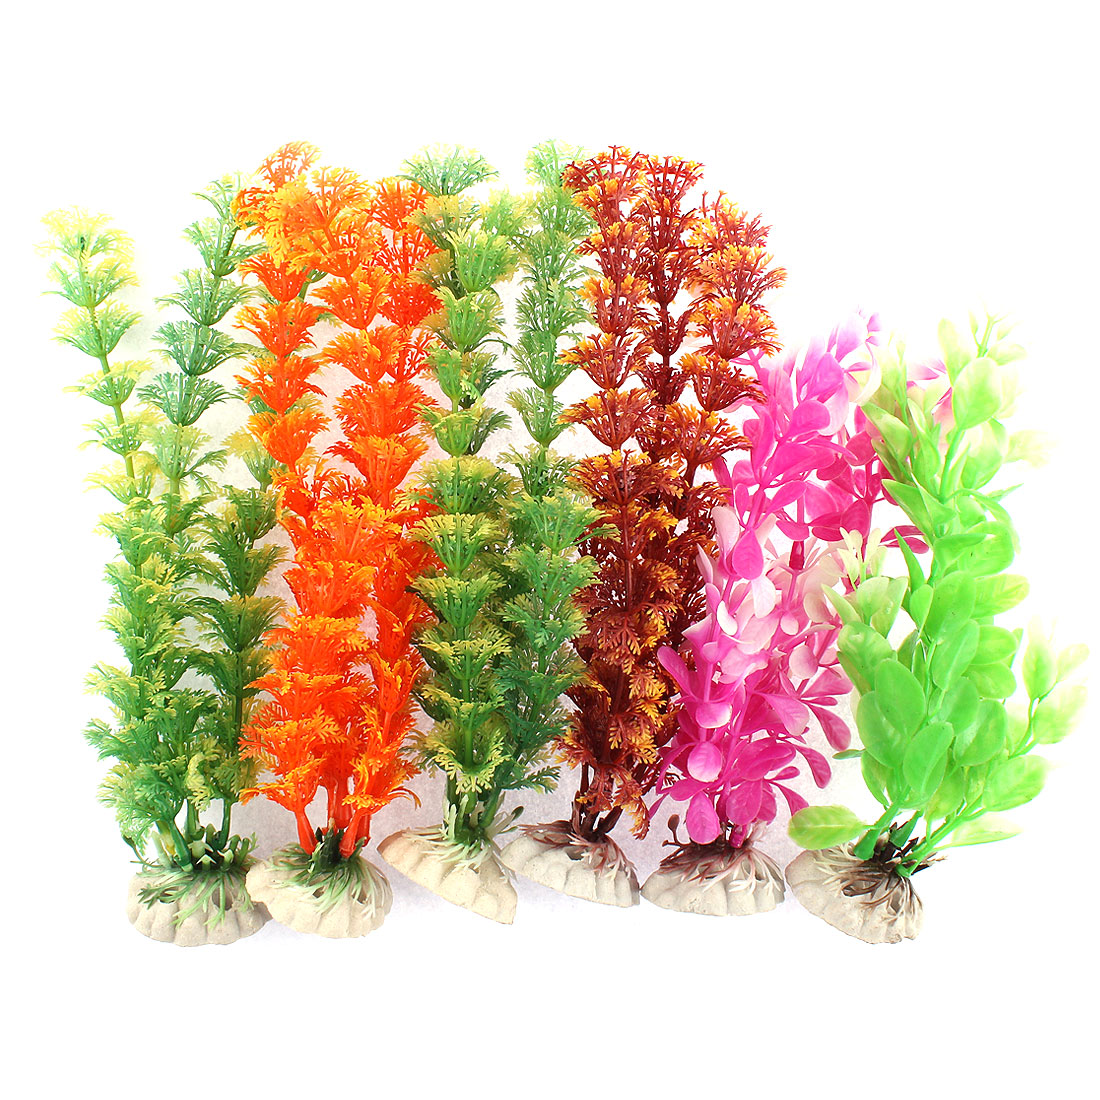 Aquarium Plastic Simulated Water Plant Adornment Multicolor 6 in 1